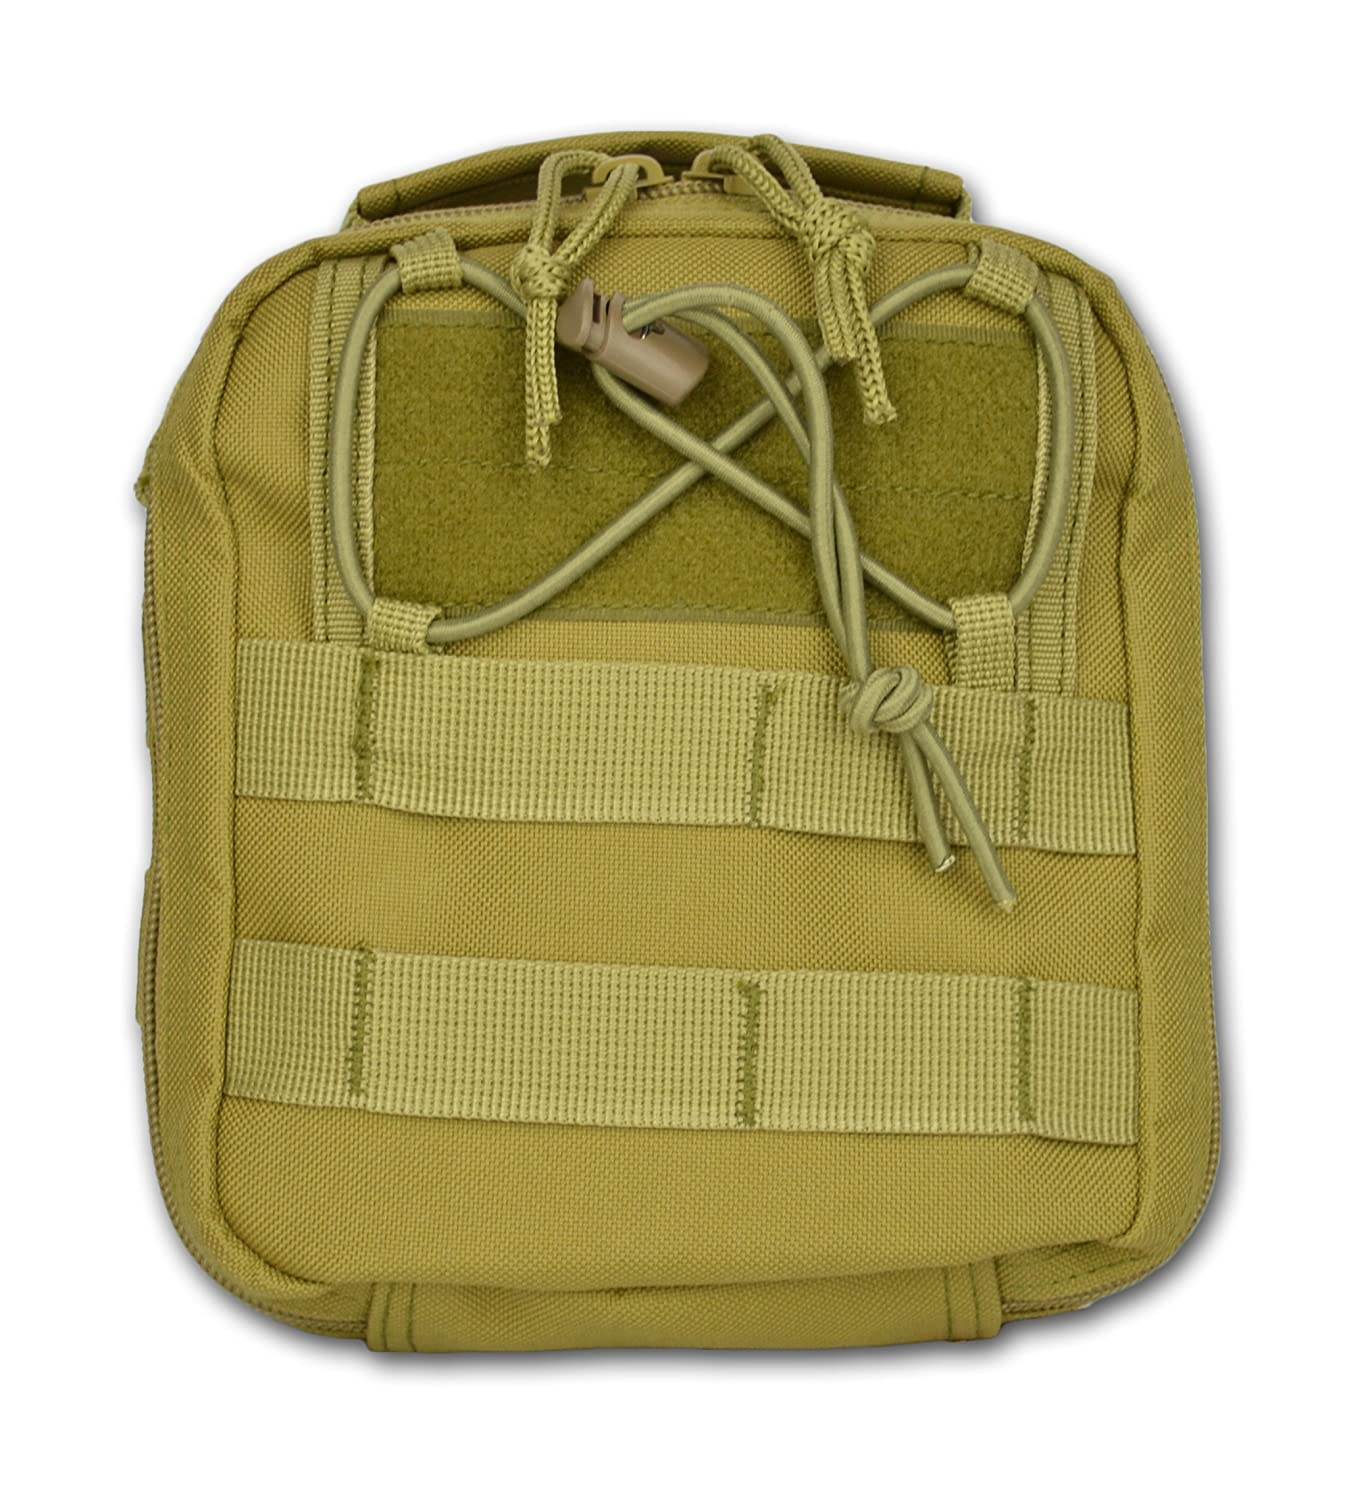 Lightning X Products Premium Nylon MOLLE Pouch Emergency Kit, Ideal for Tactical Medics, Military, Outdoor Enthusiasts 8 x 6.5 x 3 , Black or Tan, for Gunshot Wounds Bleeding Control